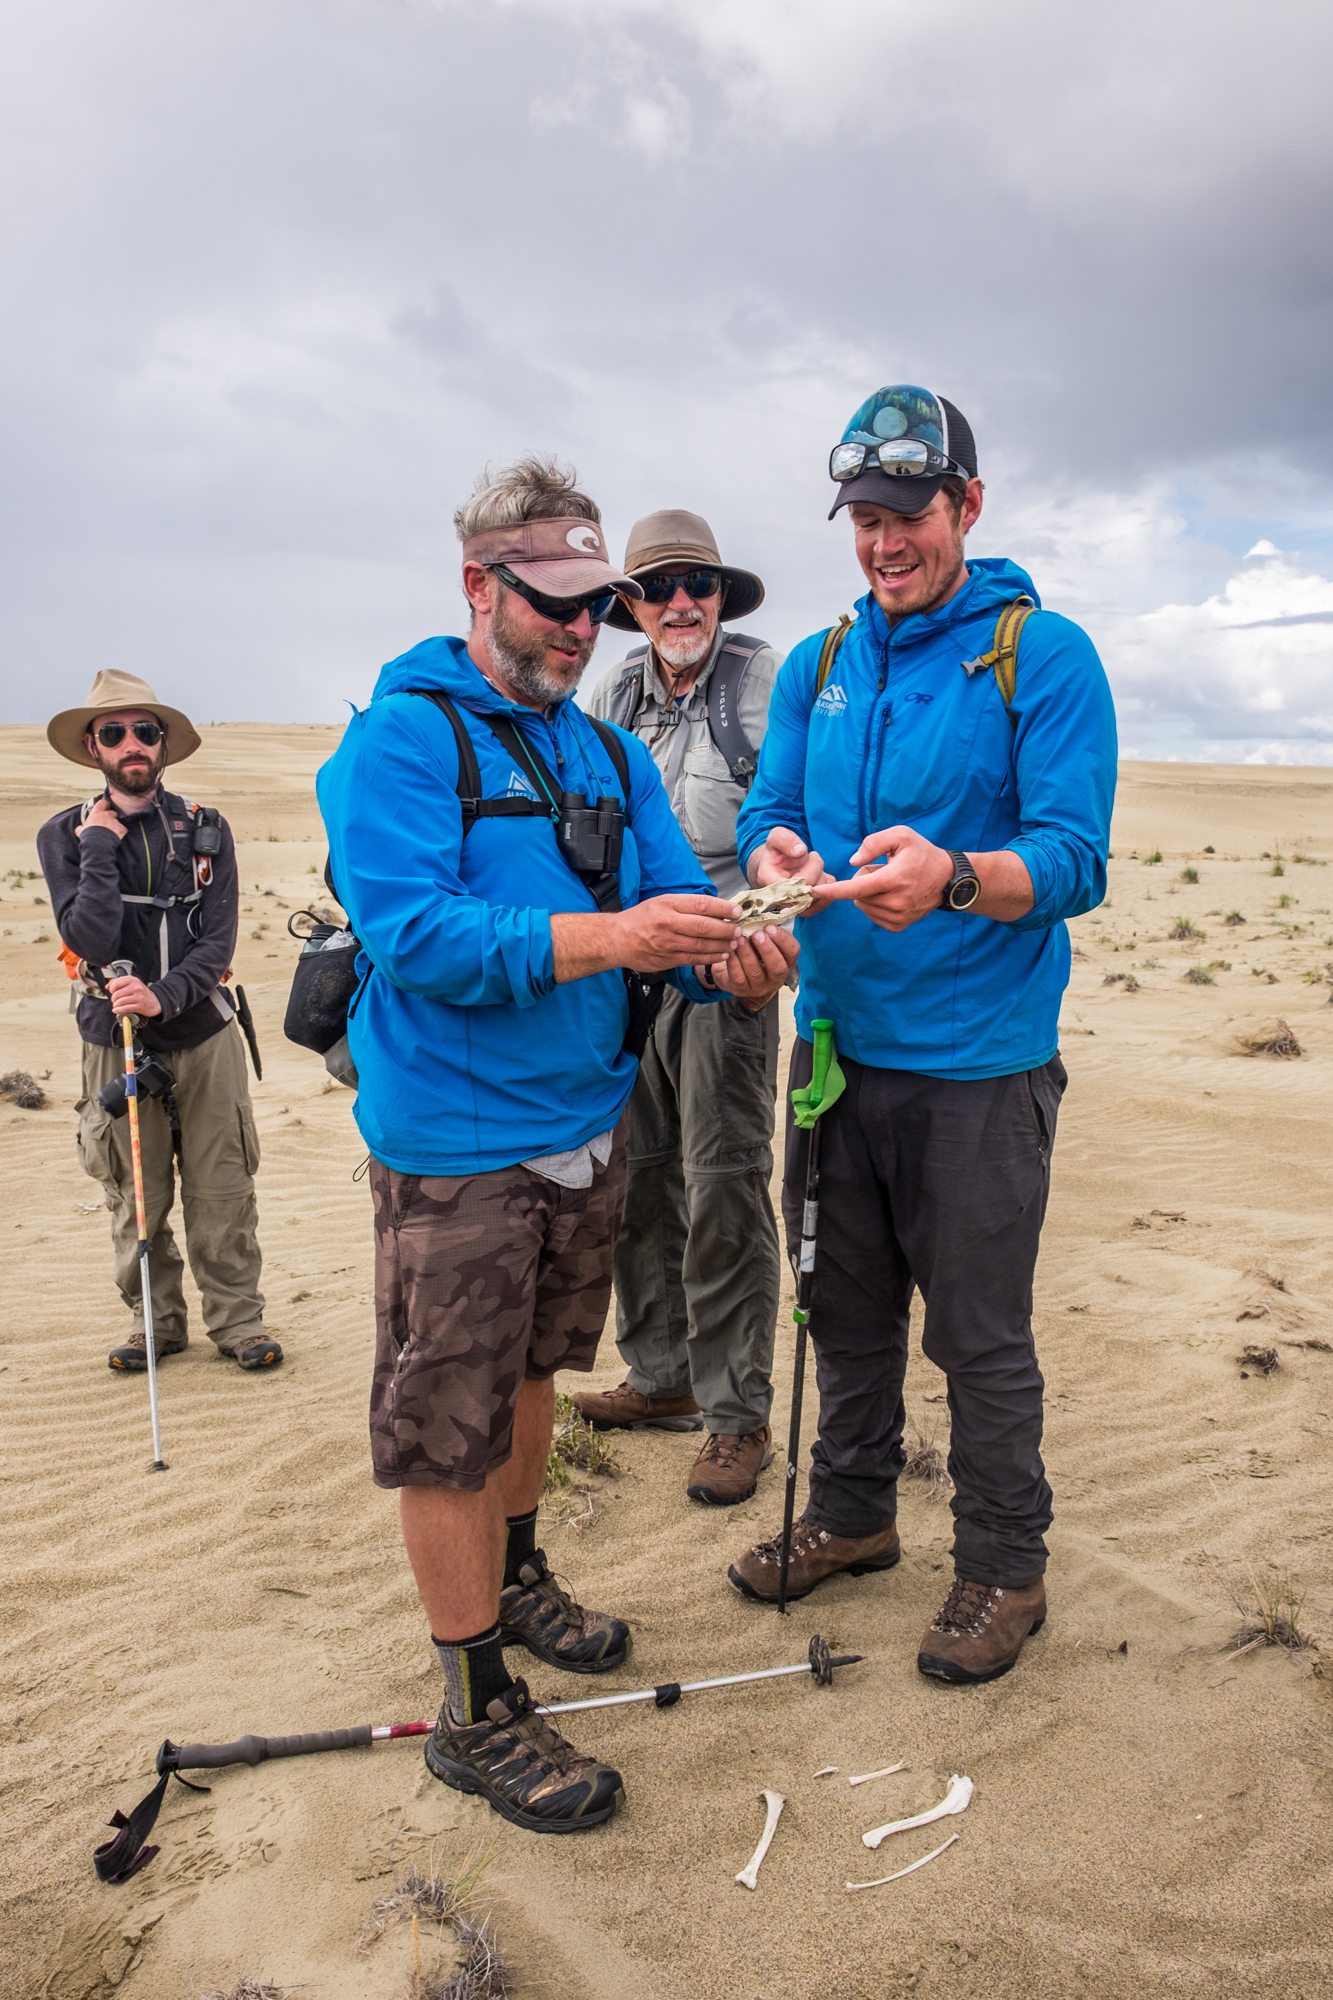 Our guides Nick and Sean, teaching us about the Alaska wilderness.We had an amazing group and had so much fun -- it was like we never stopped laughing from the moment we touched down on the dunes.